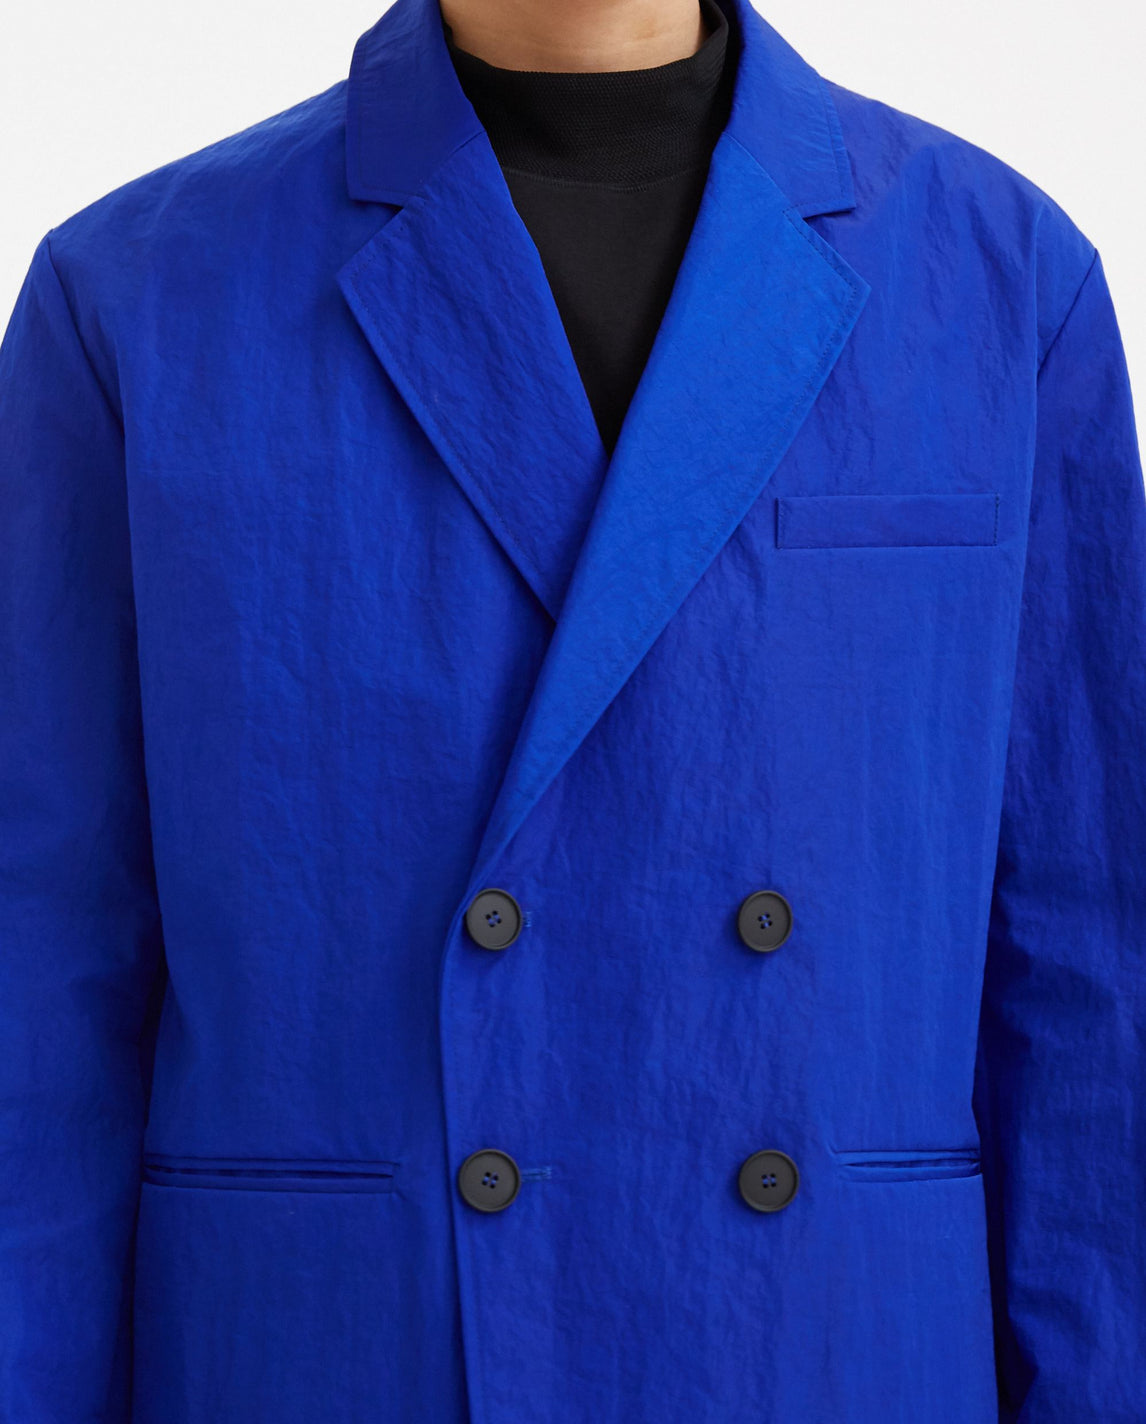 Woven Bonded Double Breasted Blazer - Blue MENS A-COLD-WALL